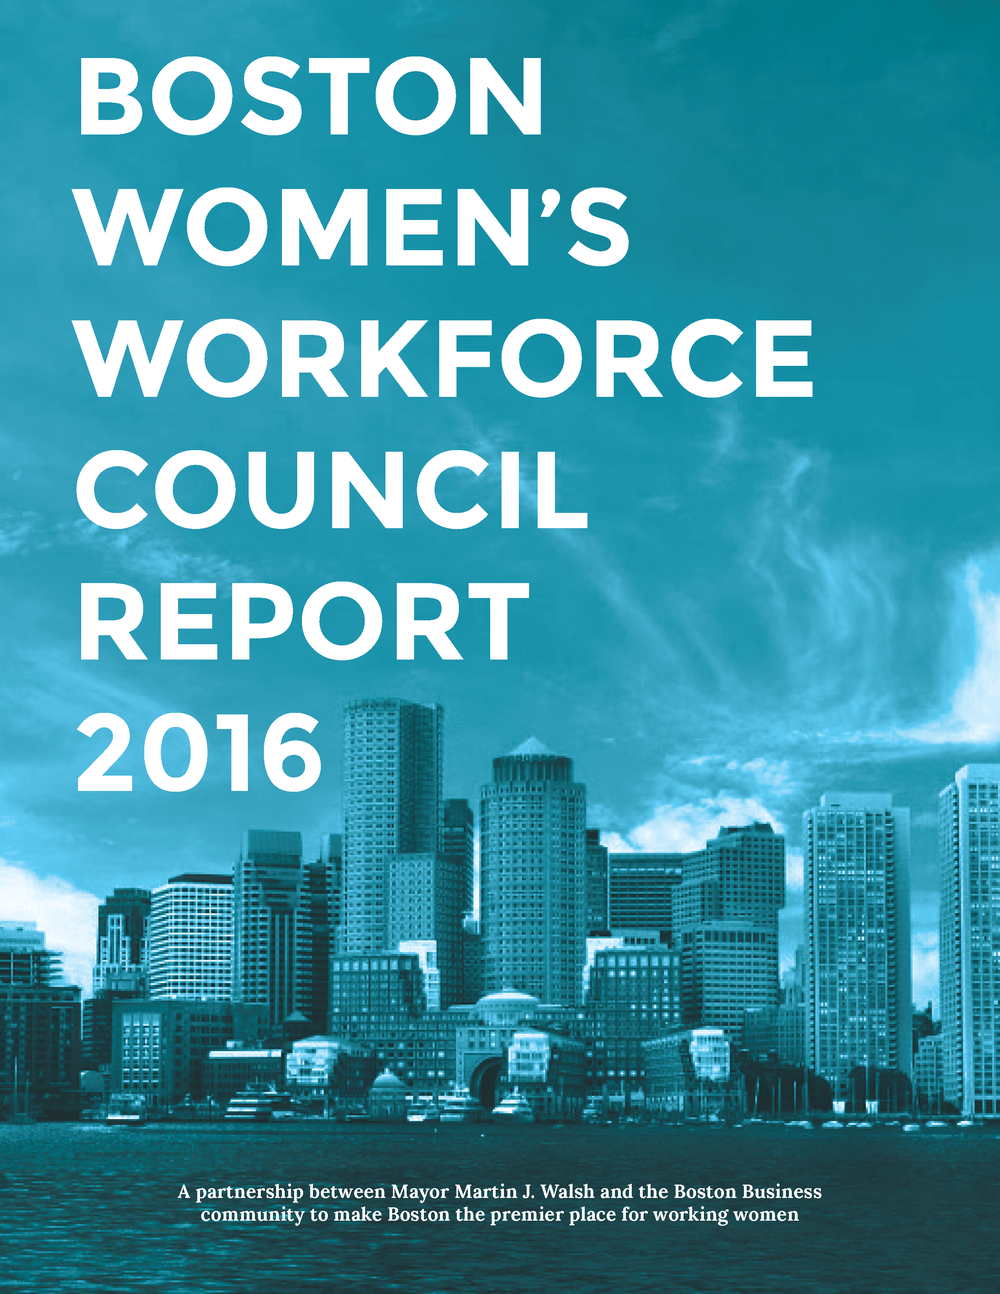 BostonWomen'sWorkforceCouncilReport2016_Page_01.png